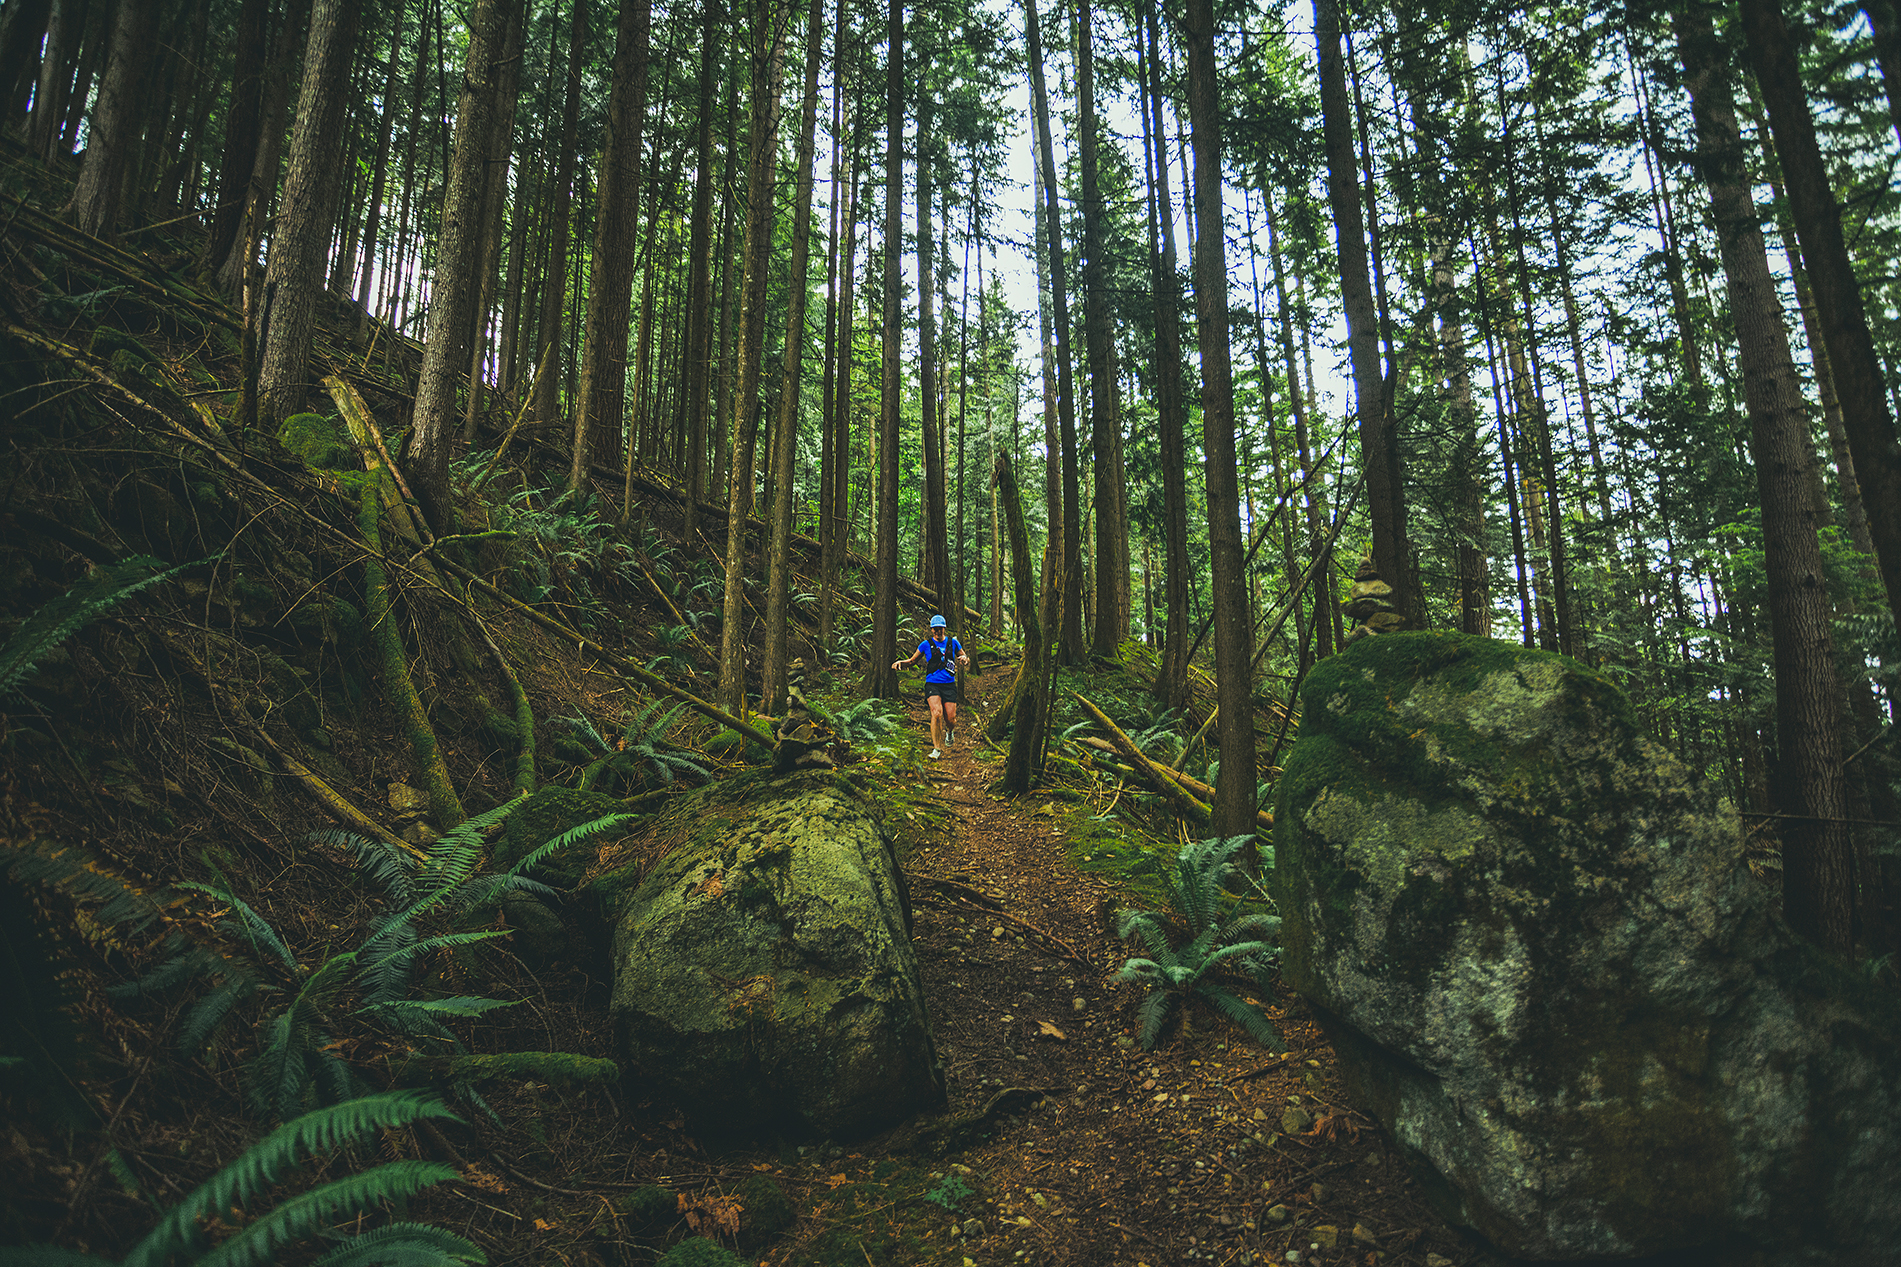 Fraser Valley Trail Races - Bear Mountain - IMG_3079 by Brice Ferre Studio - Vancouver Portrait Adventure and Athlete Photographer.jpg